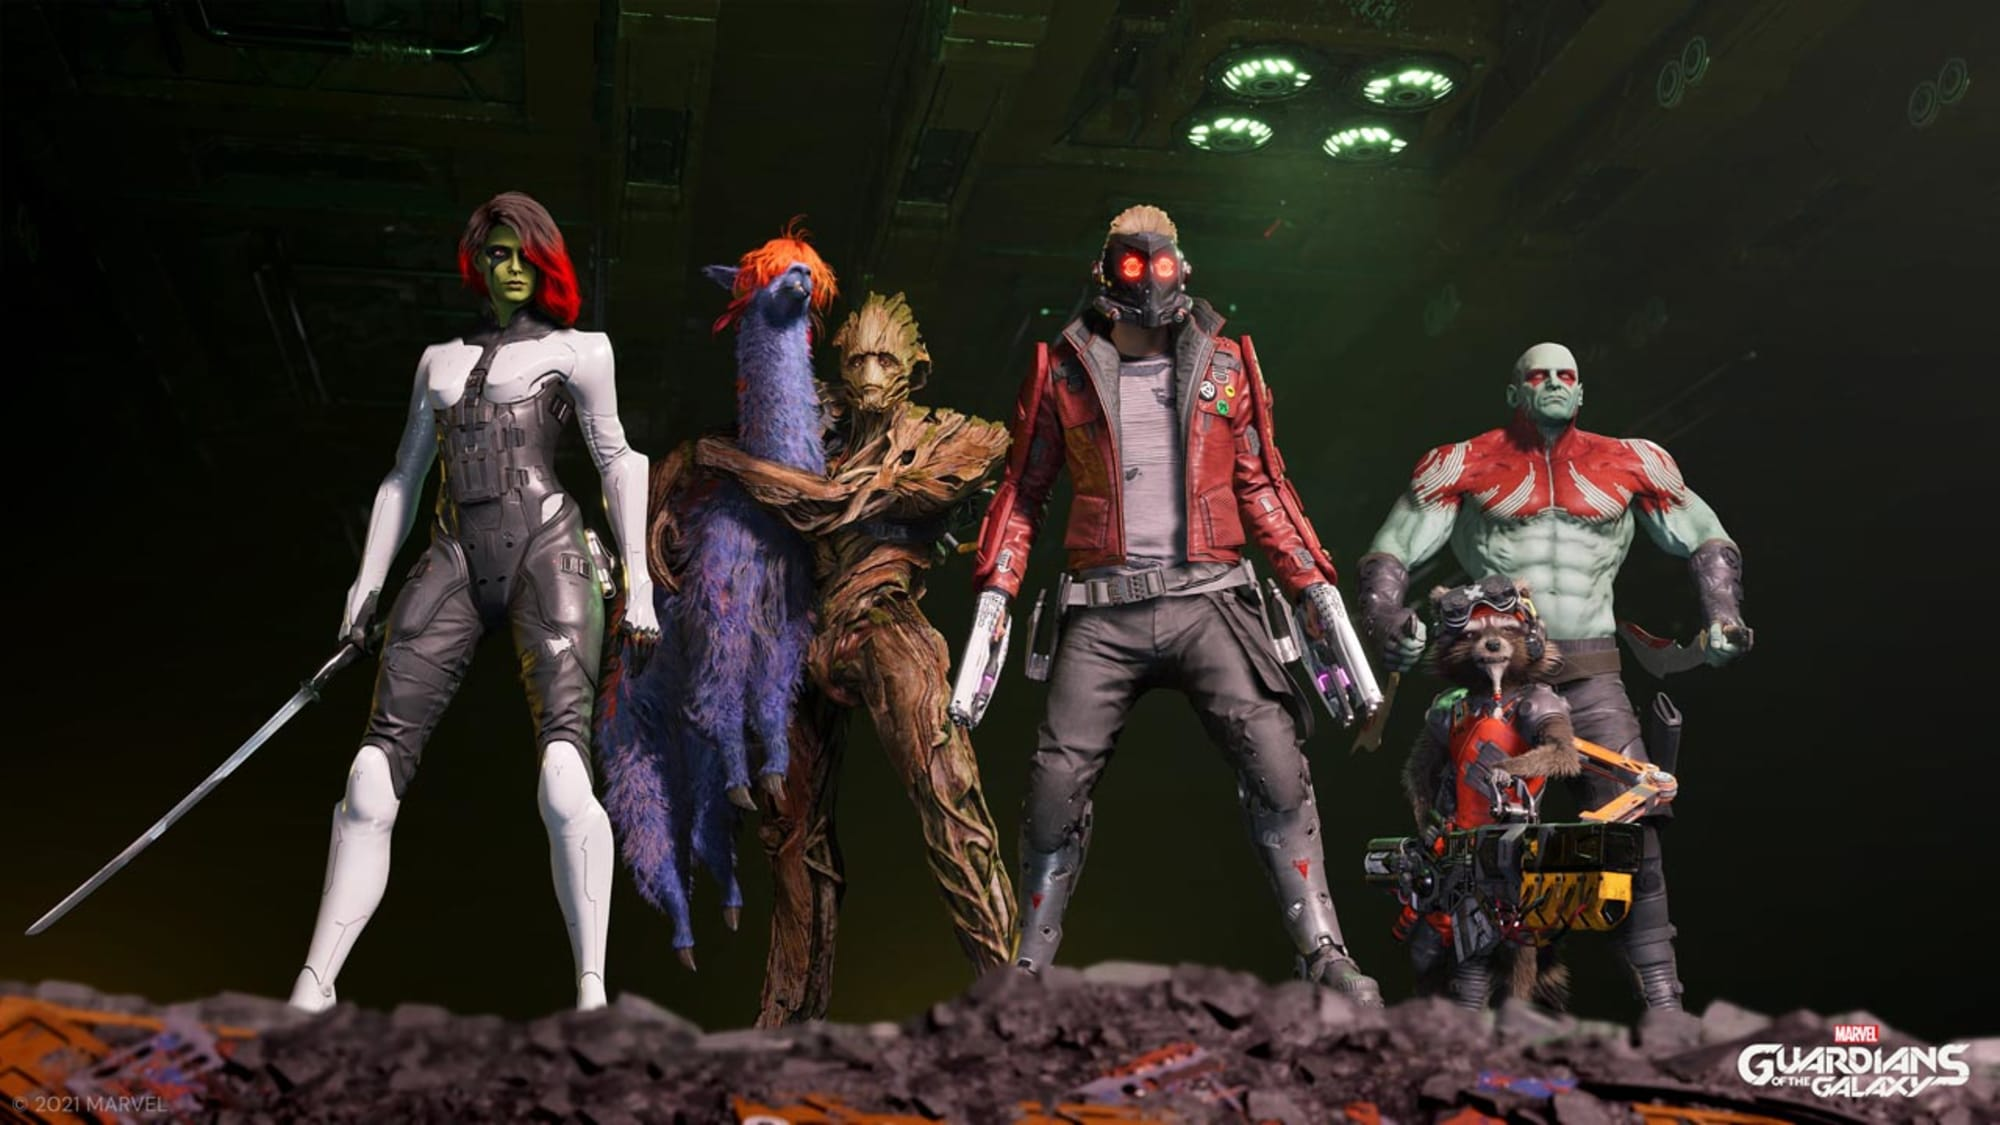 Marvel's Guardians of the Galaxy review: A farkin' good time